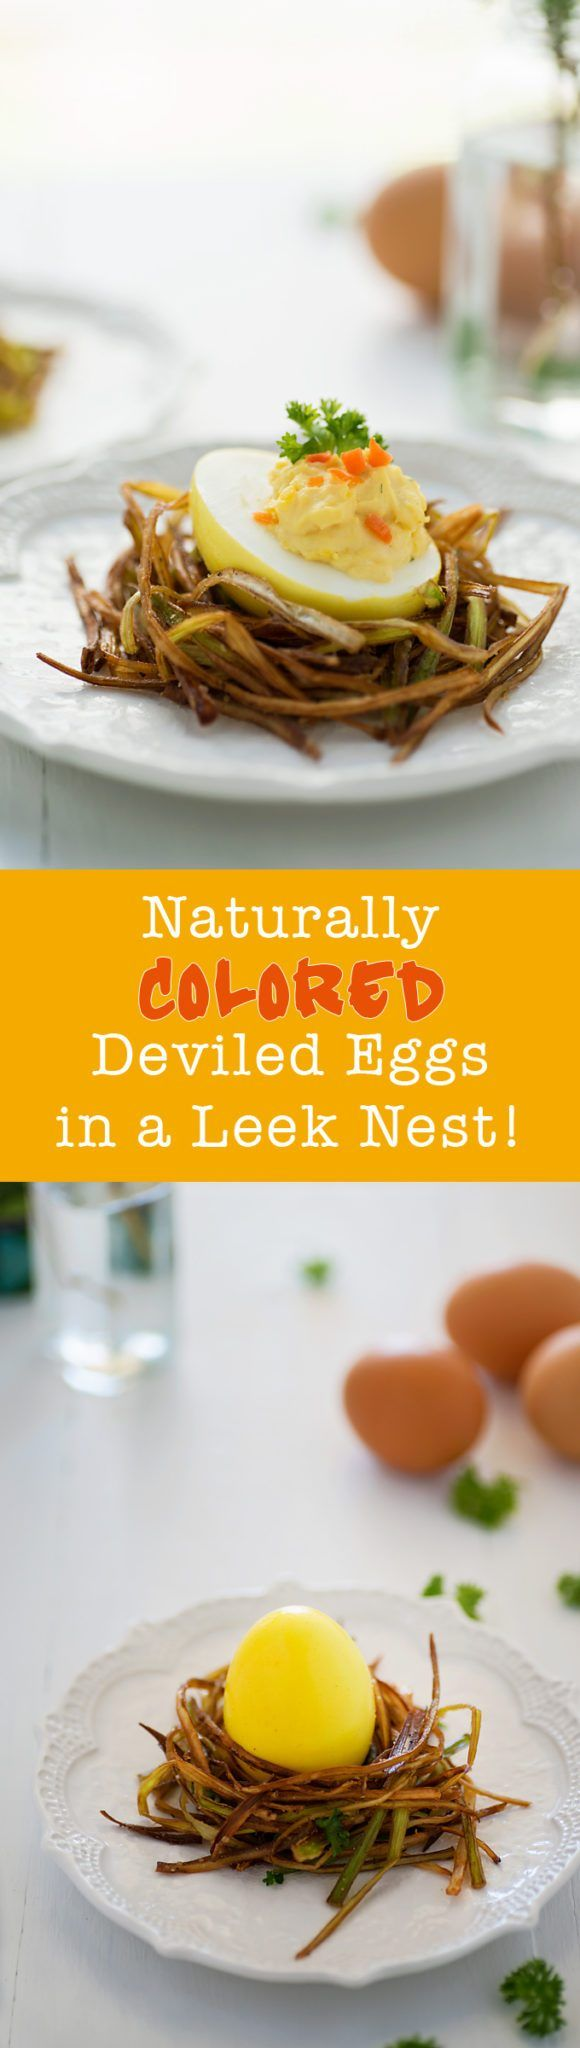 41 best paleo easter images on pinterest paleo food paleo this is perfect for my easter brunch naturally colored deviled eggs in a leek nest negle Image collections